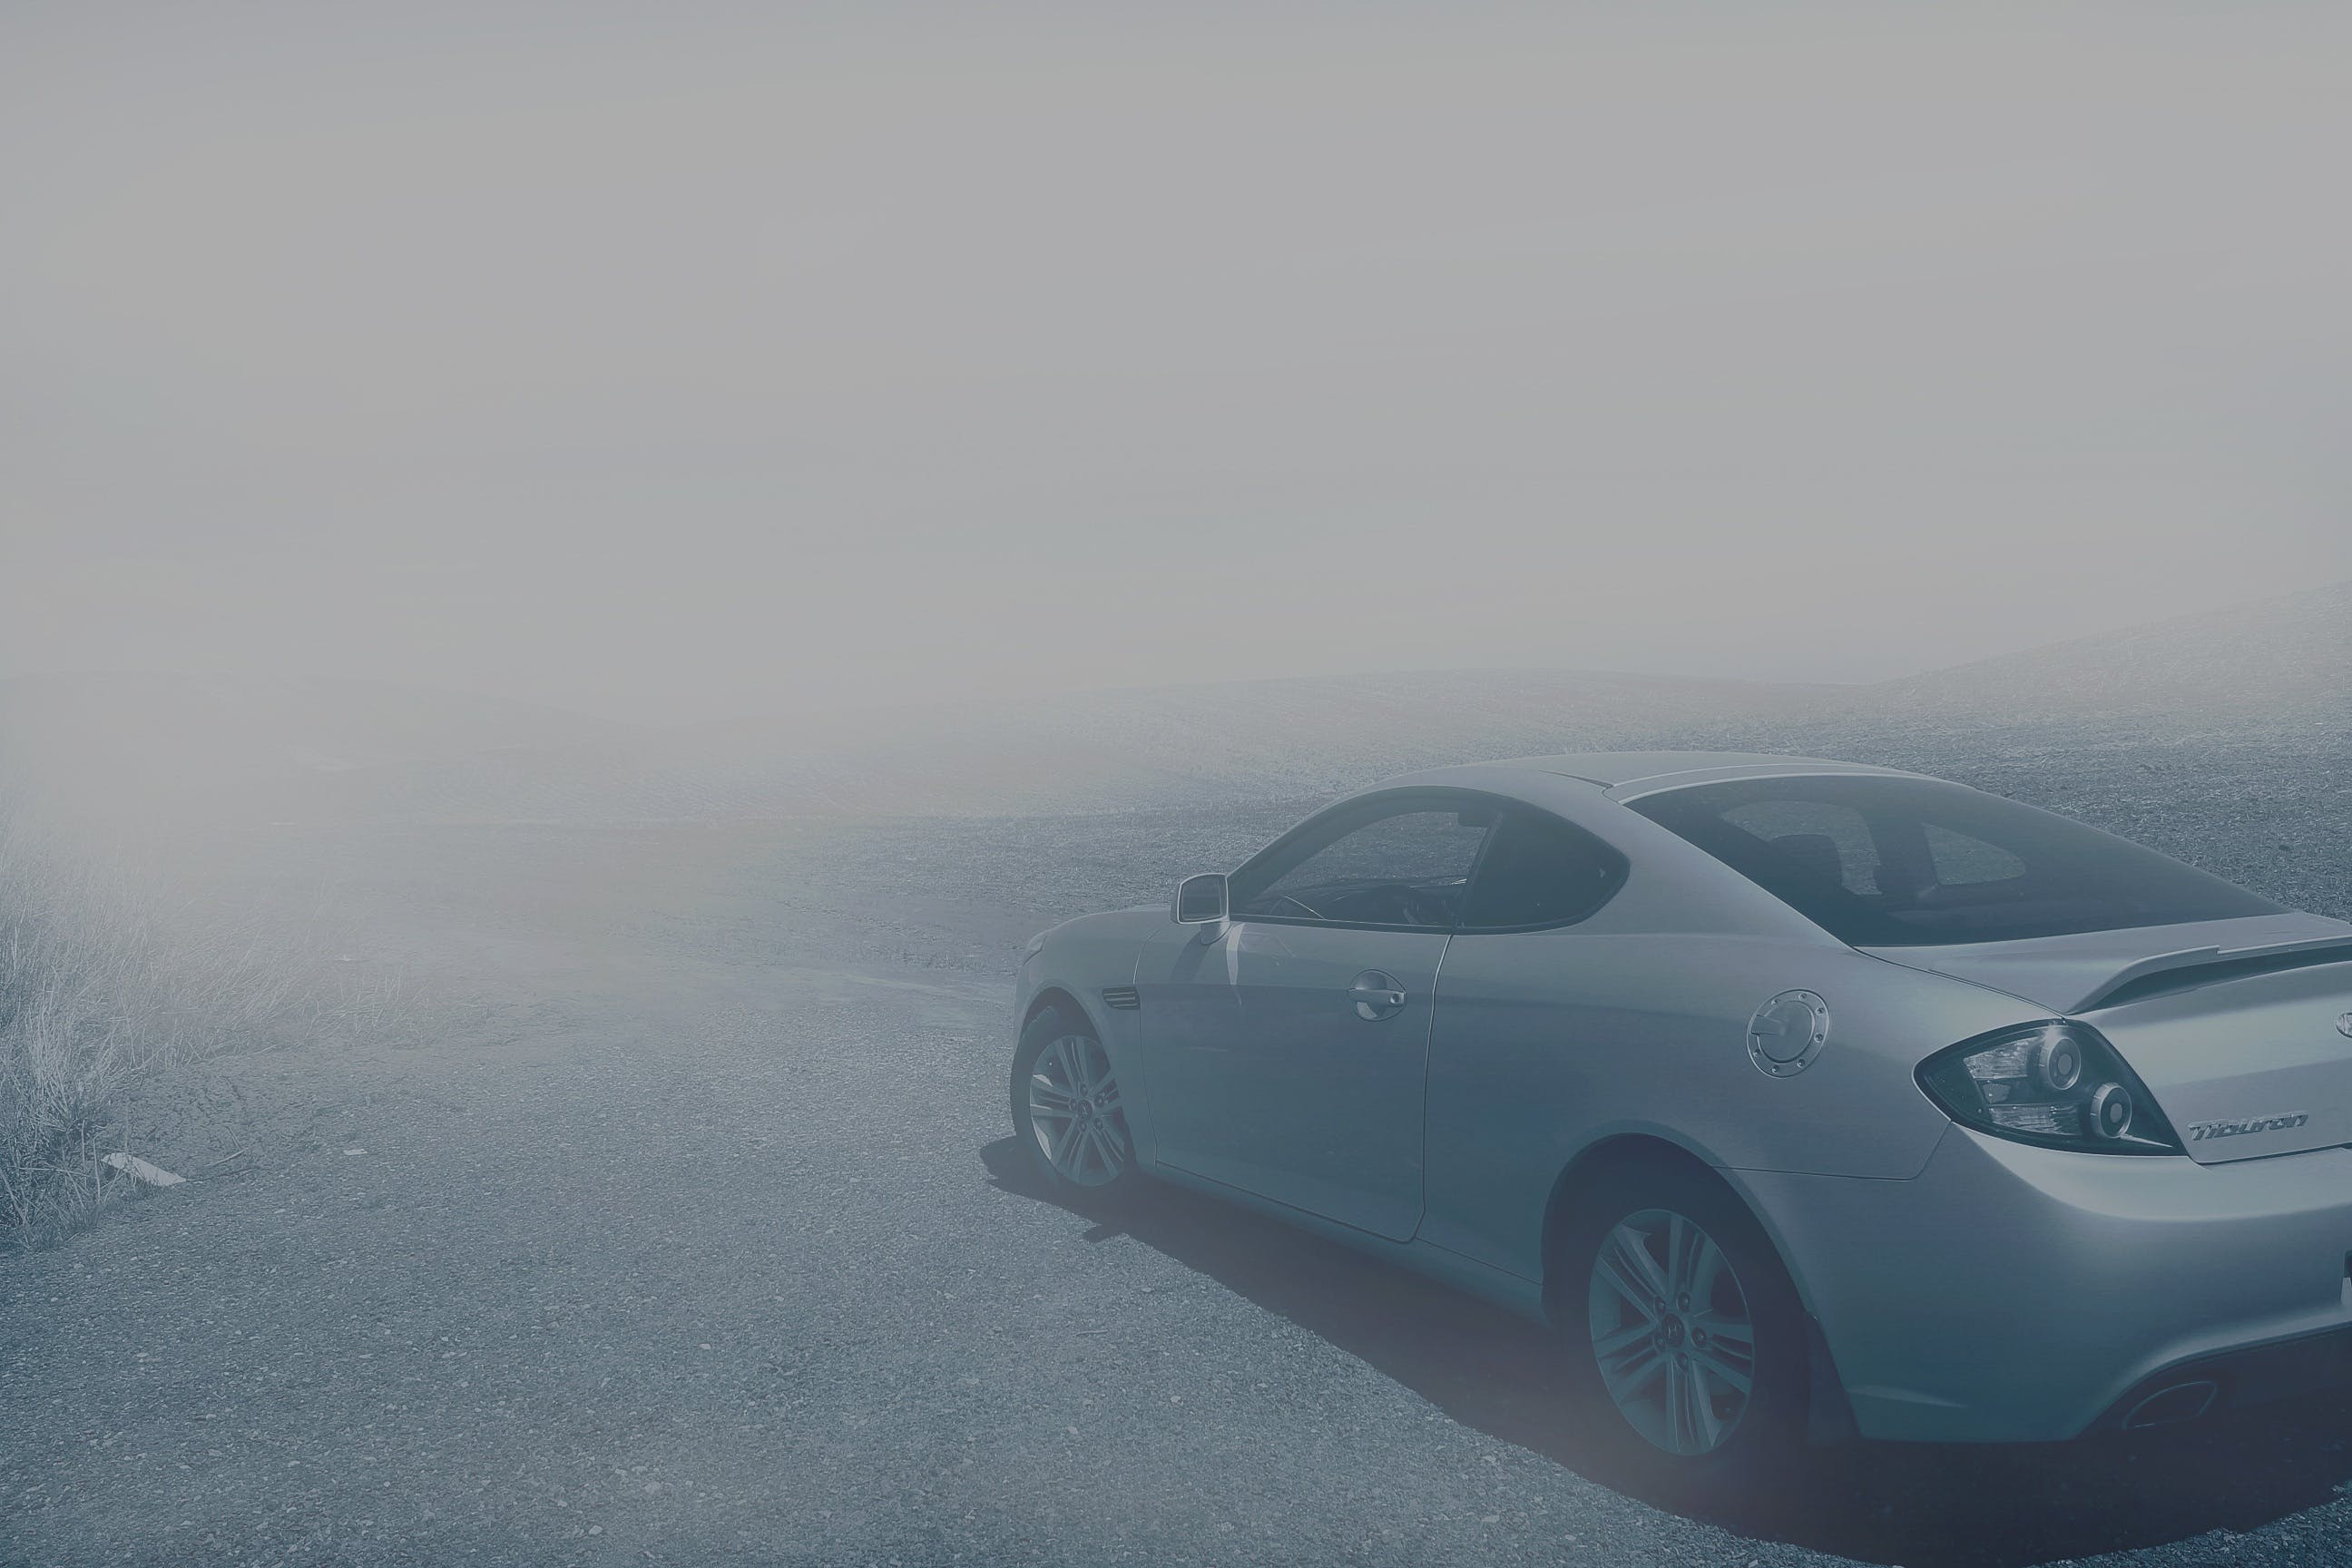 Free stock photo of traffic, weather, fog, car